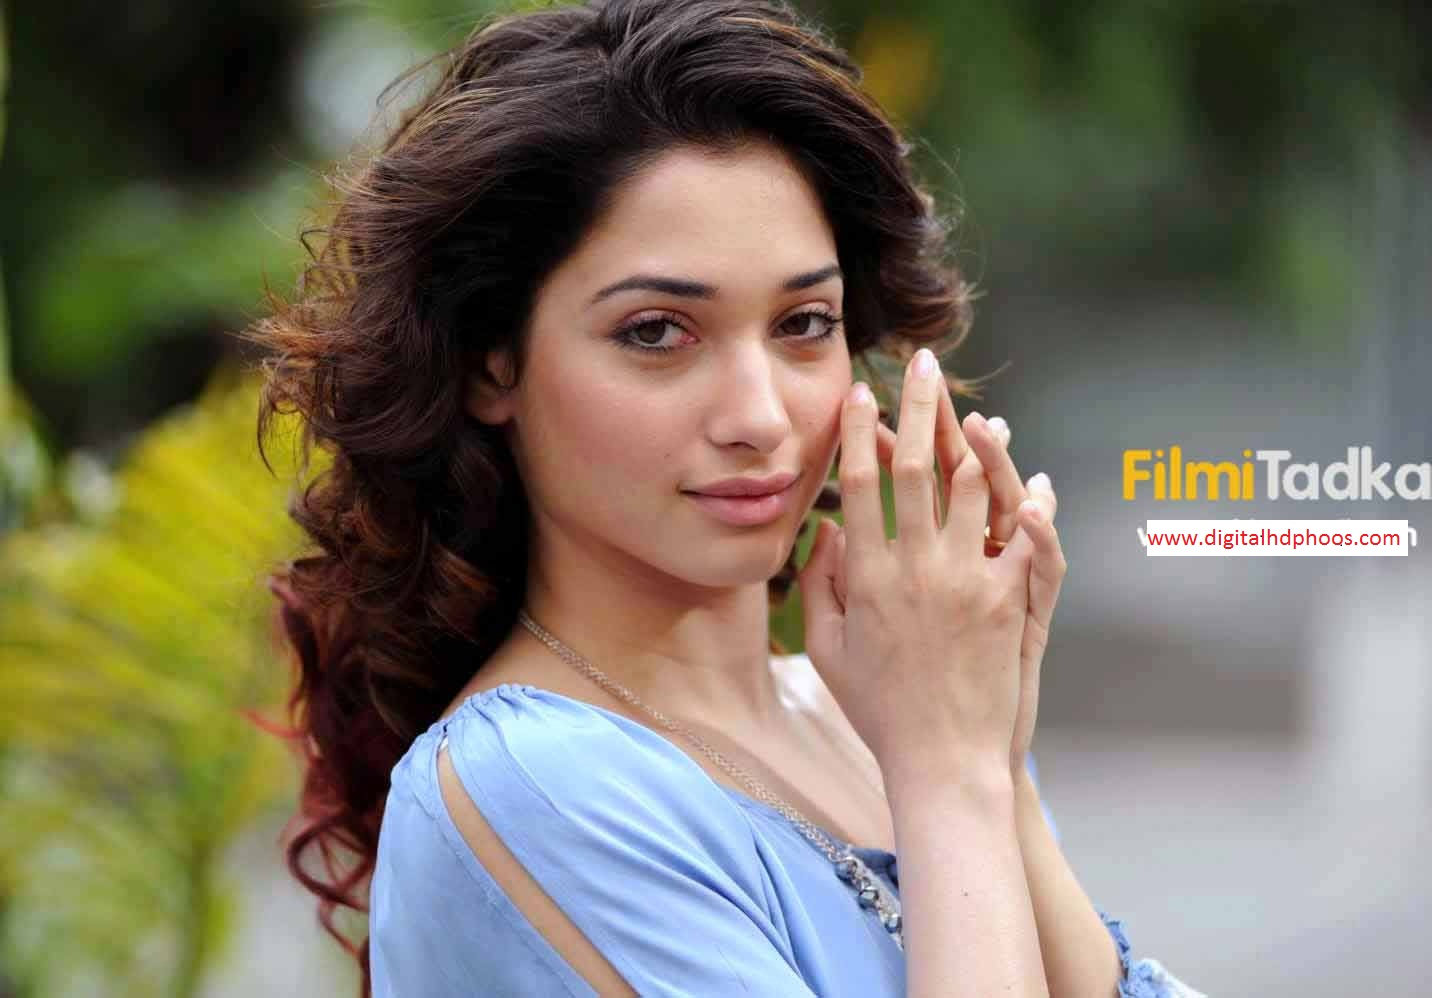 tamanna bhatia digital hd photos